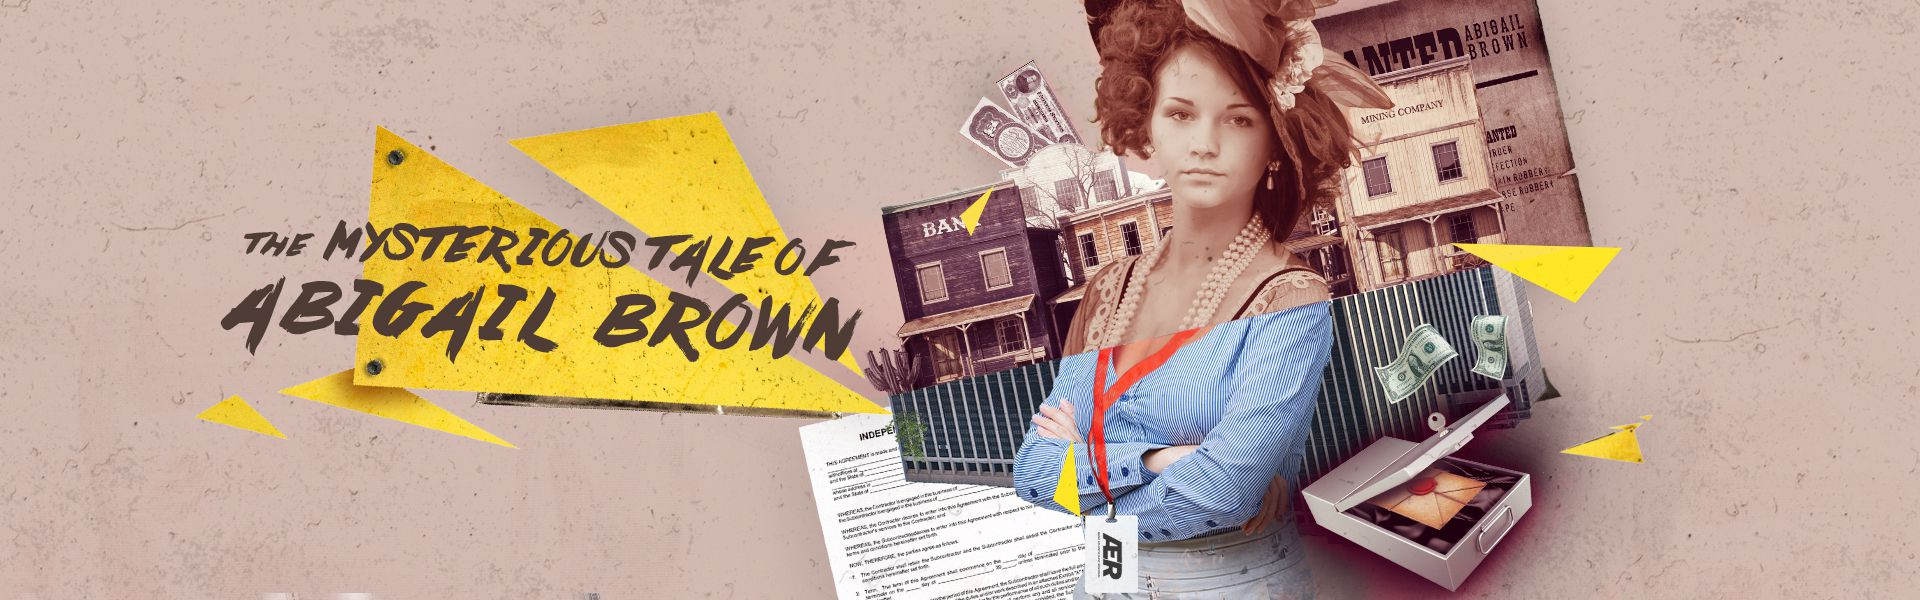 Mysterious Tale of Abigail Brown